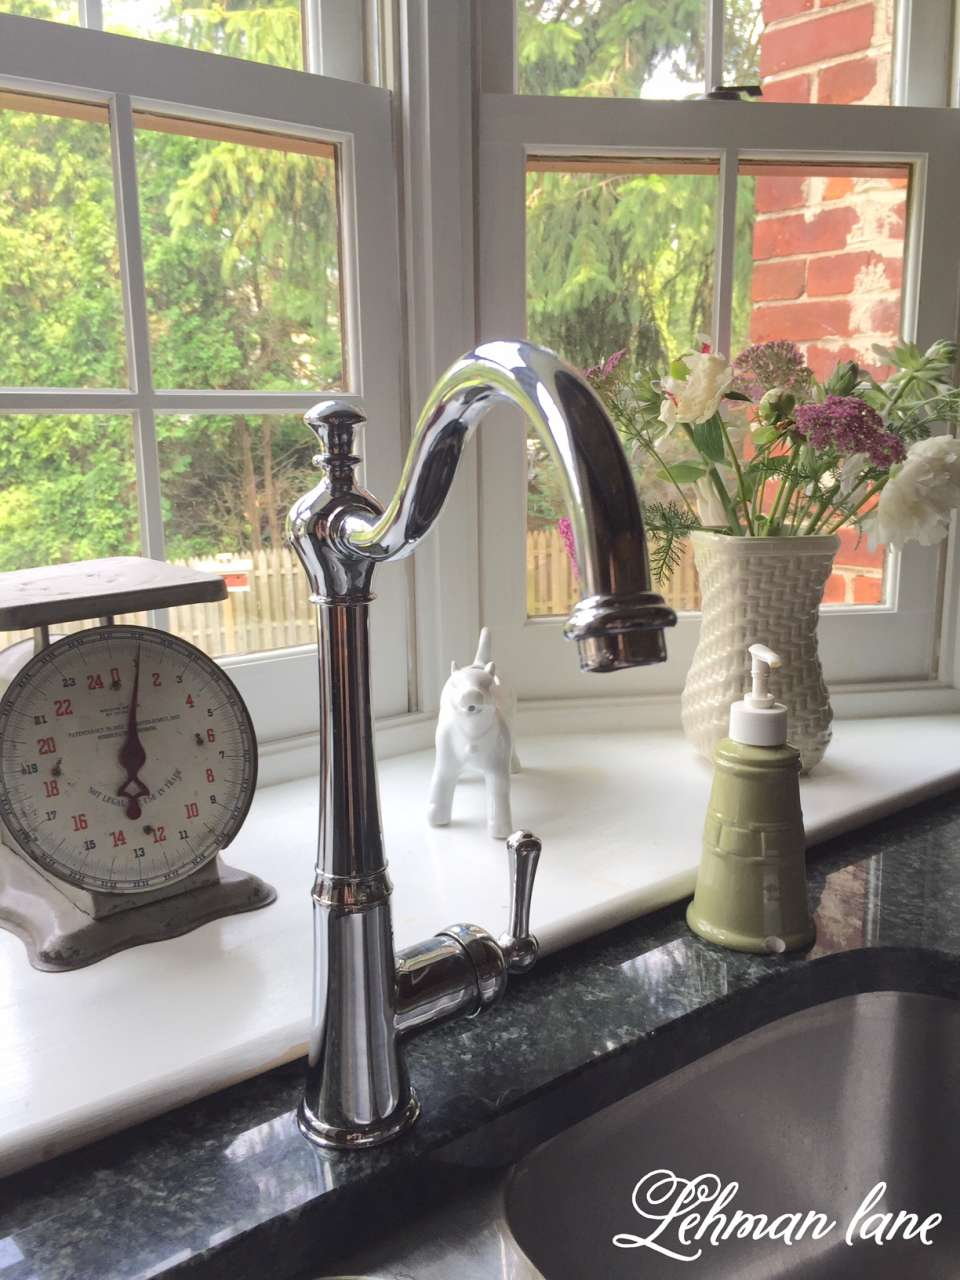 Our New Kitchen Faucet